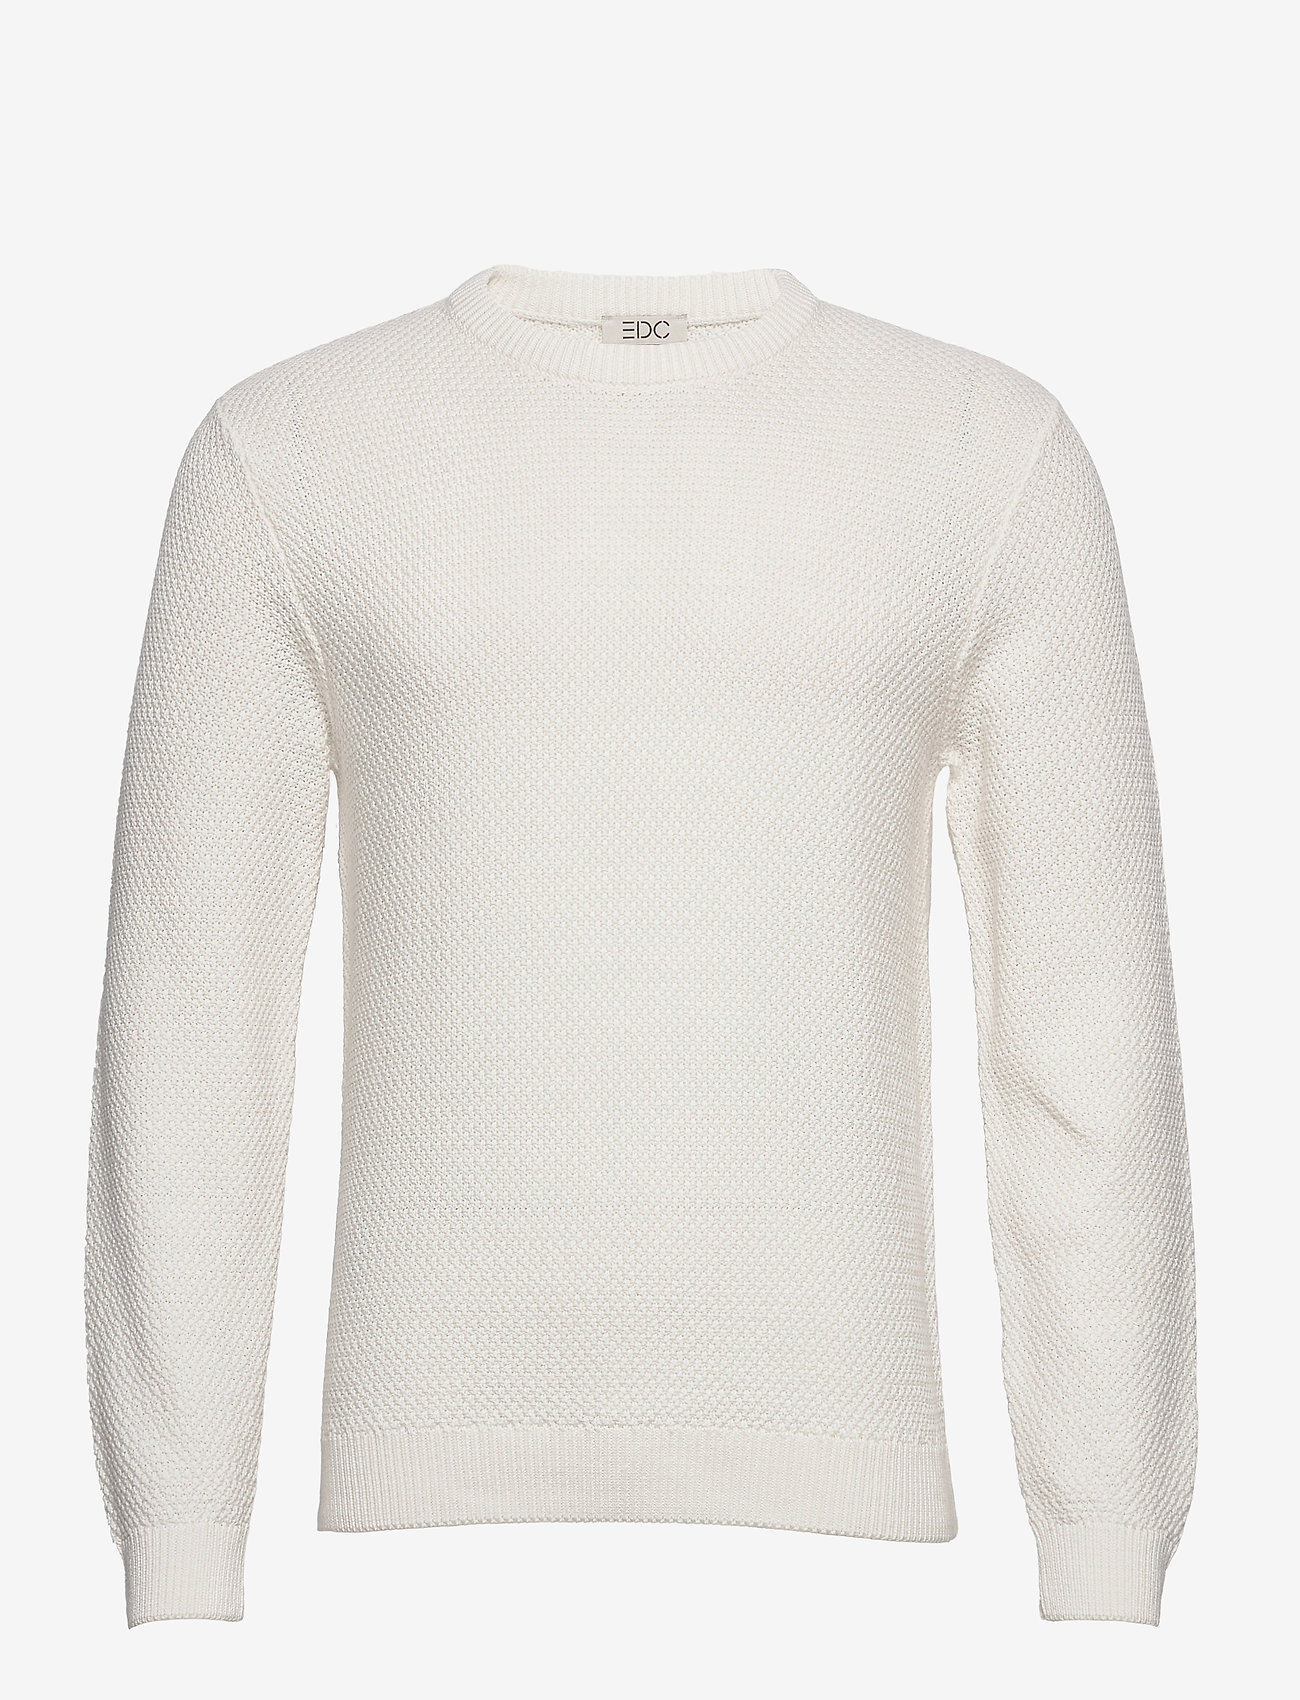 EDC by Esprit - Sweaters - tricots basiques - off white - 0